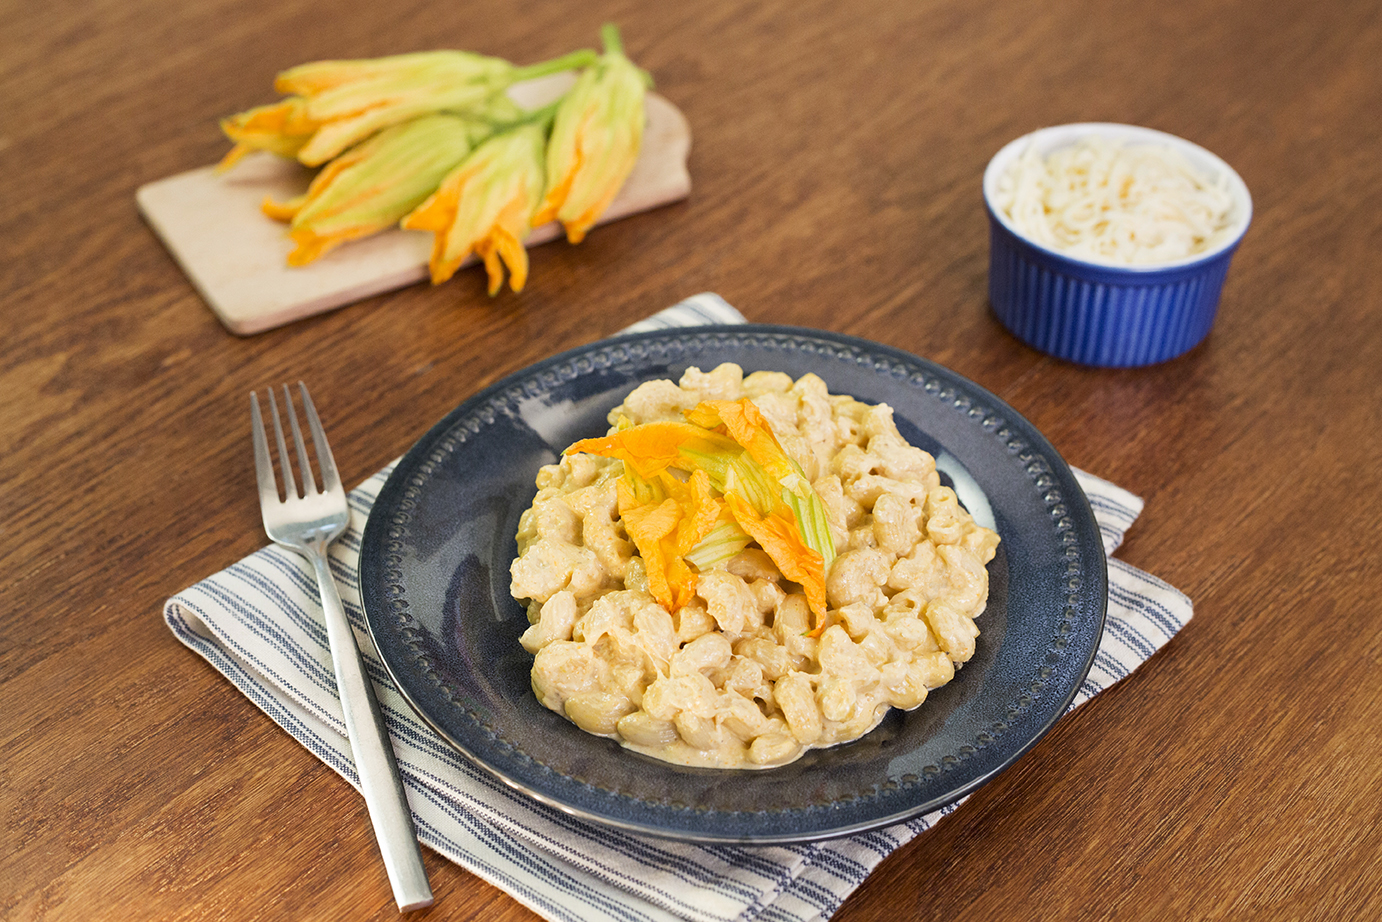 Mac and cheese con flor de calabaza